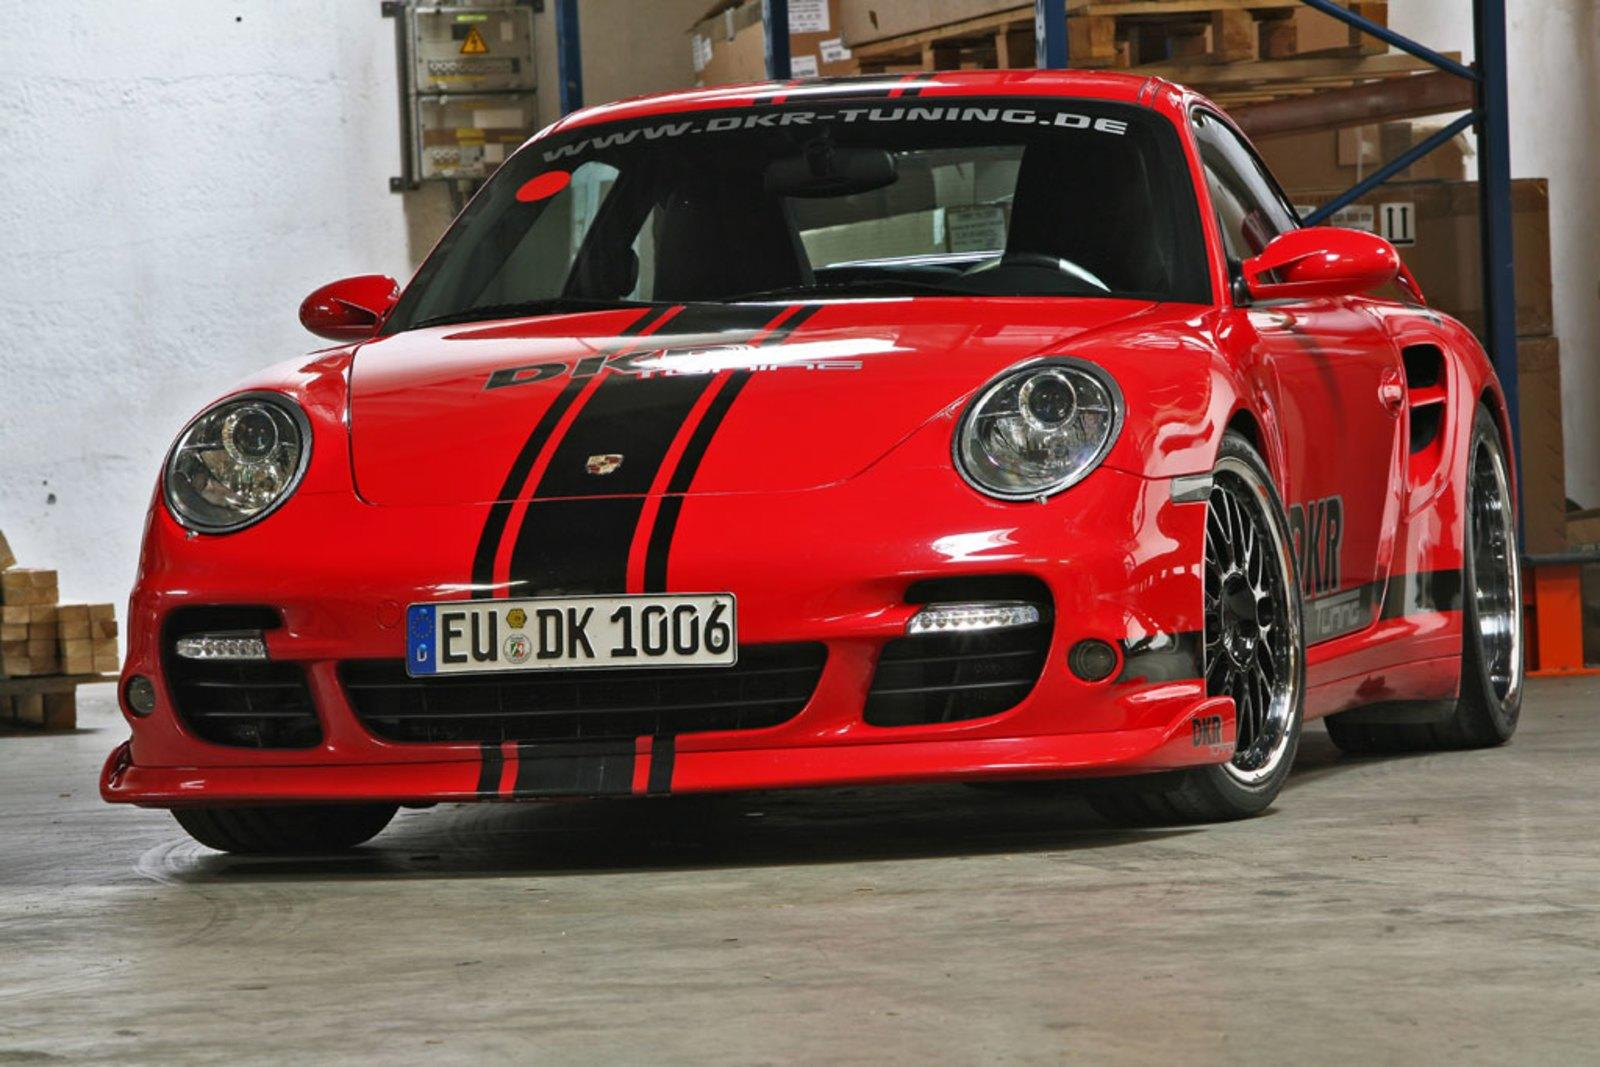 porsche 997 turbo by dkr tuning news gallery top speed. Black Bedroom Furniture Sets. Home Design Ideas